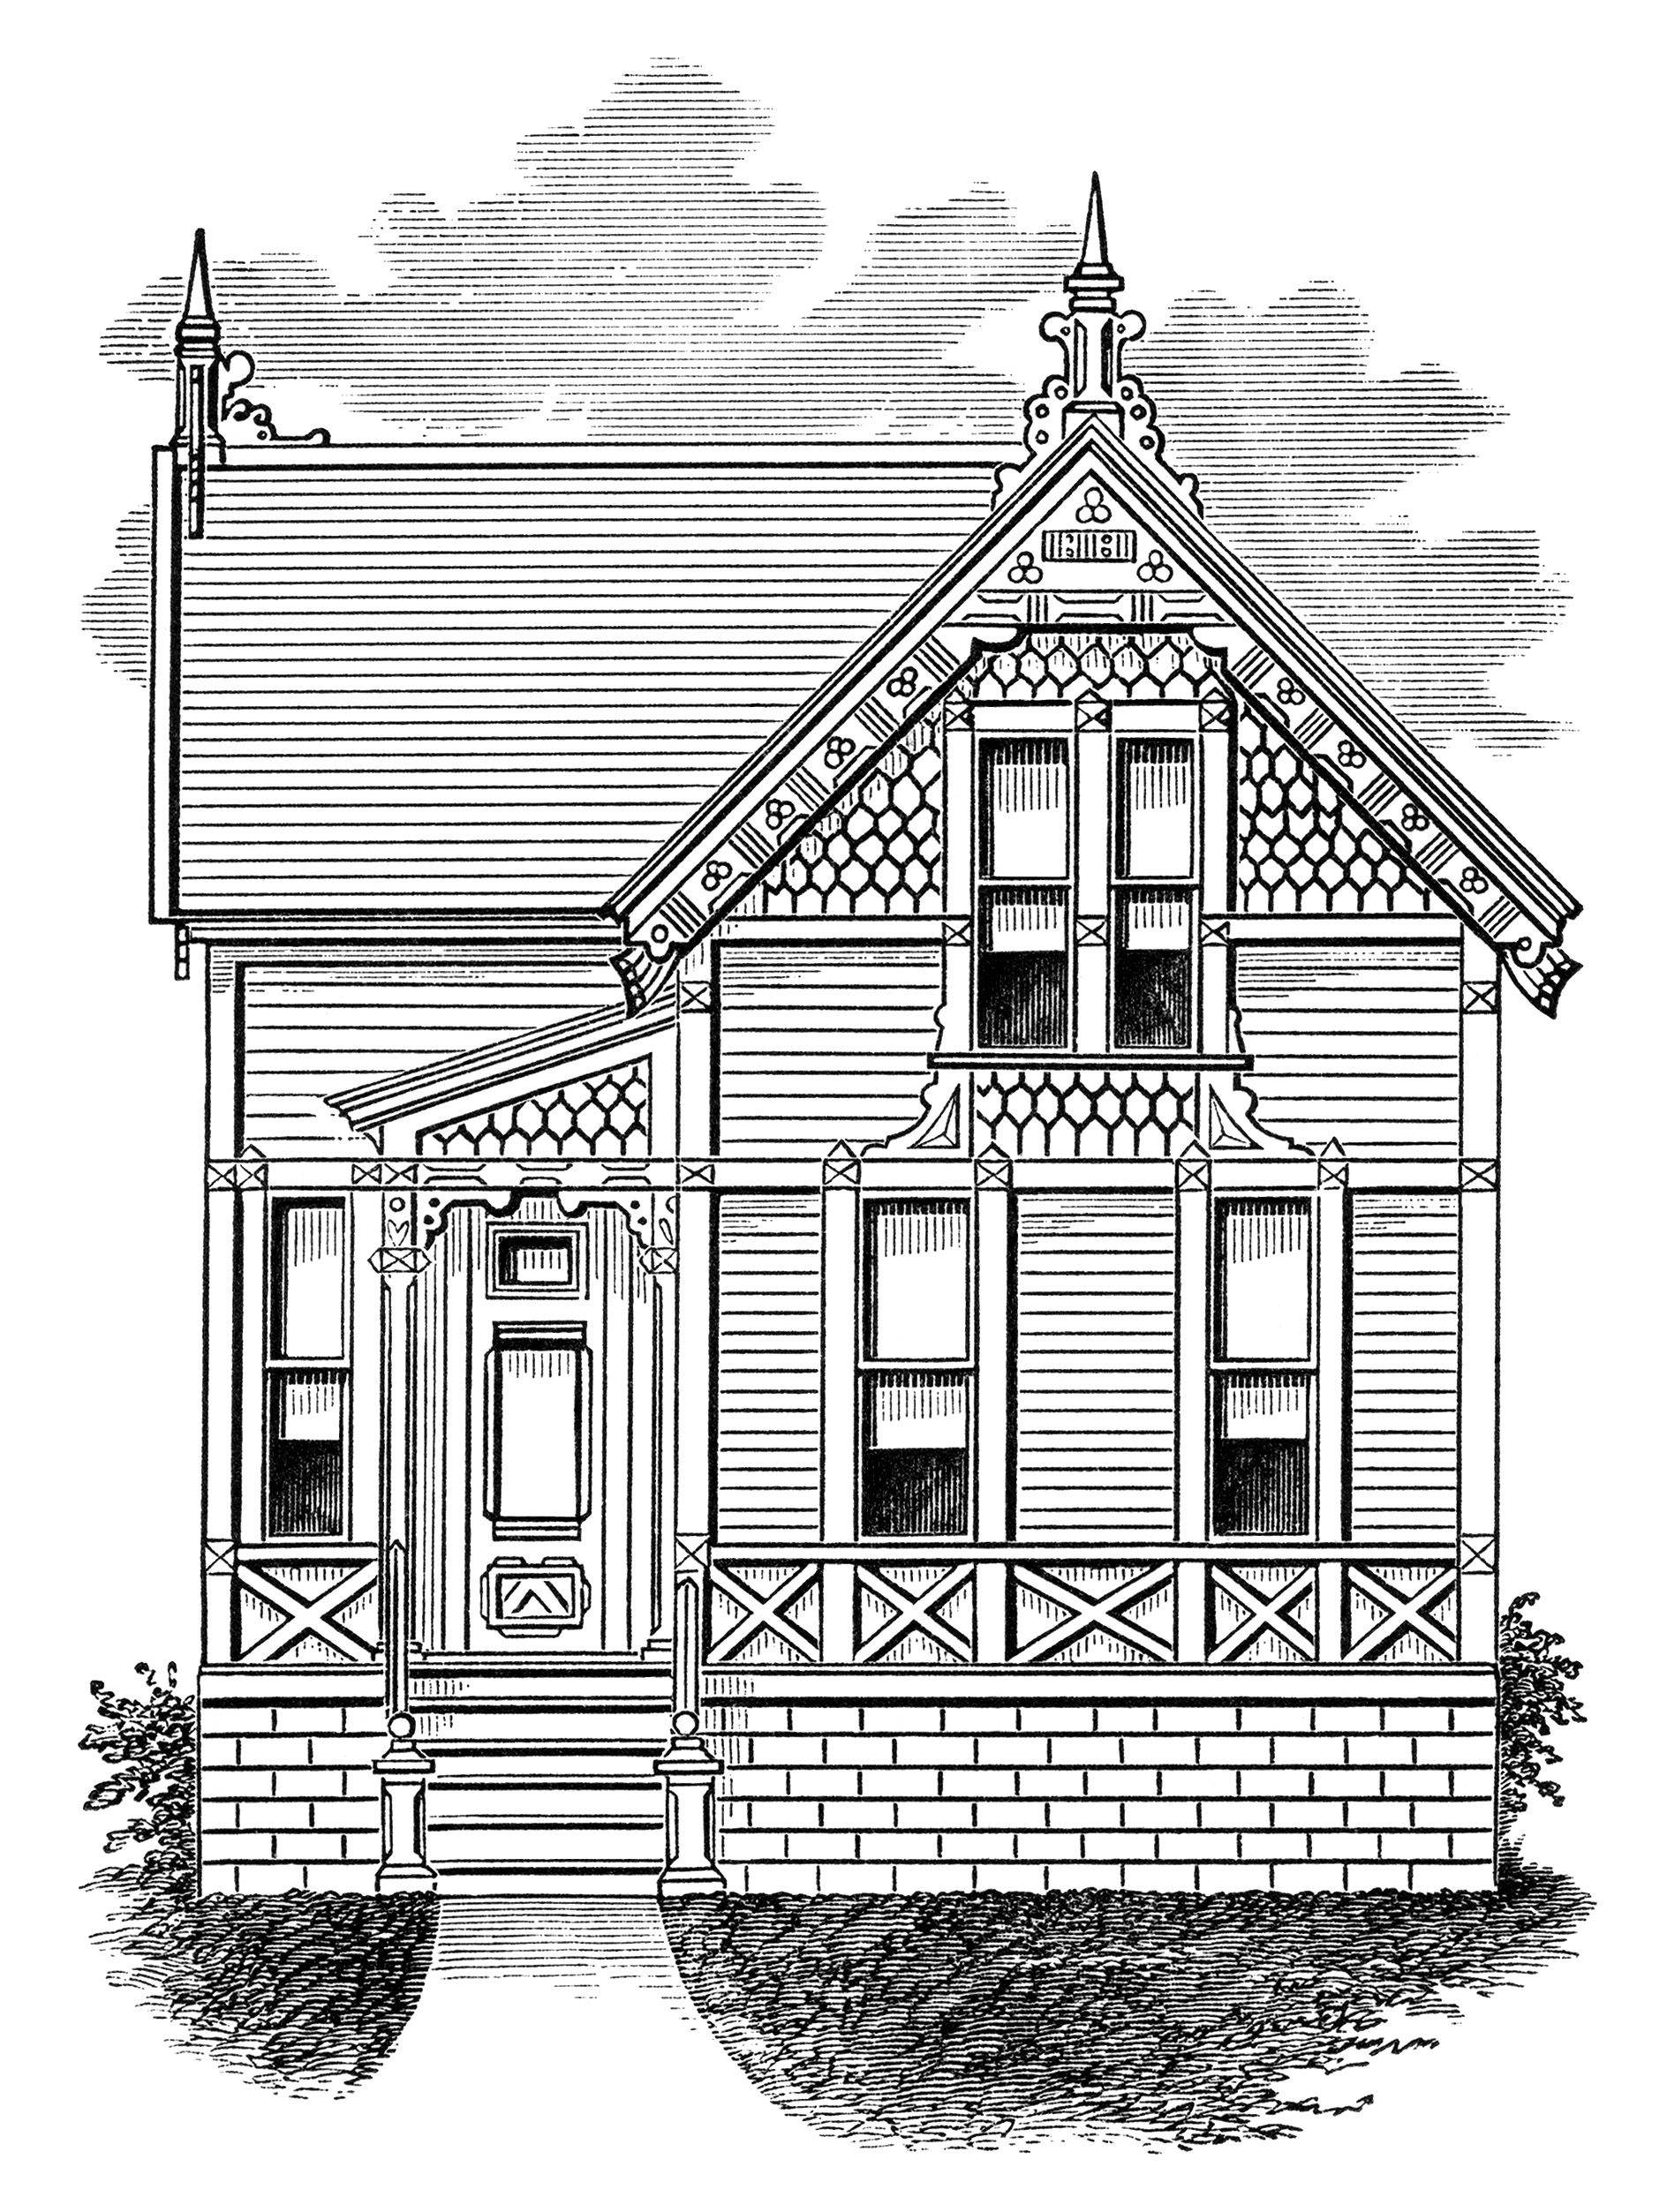 Mobile Home Vector at GetDrawings.com.